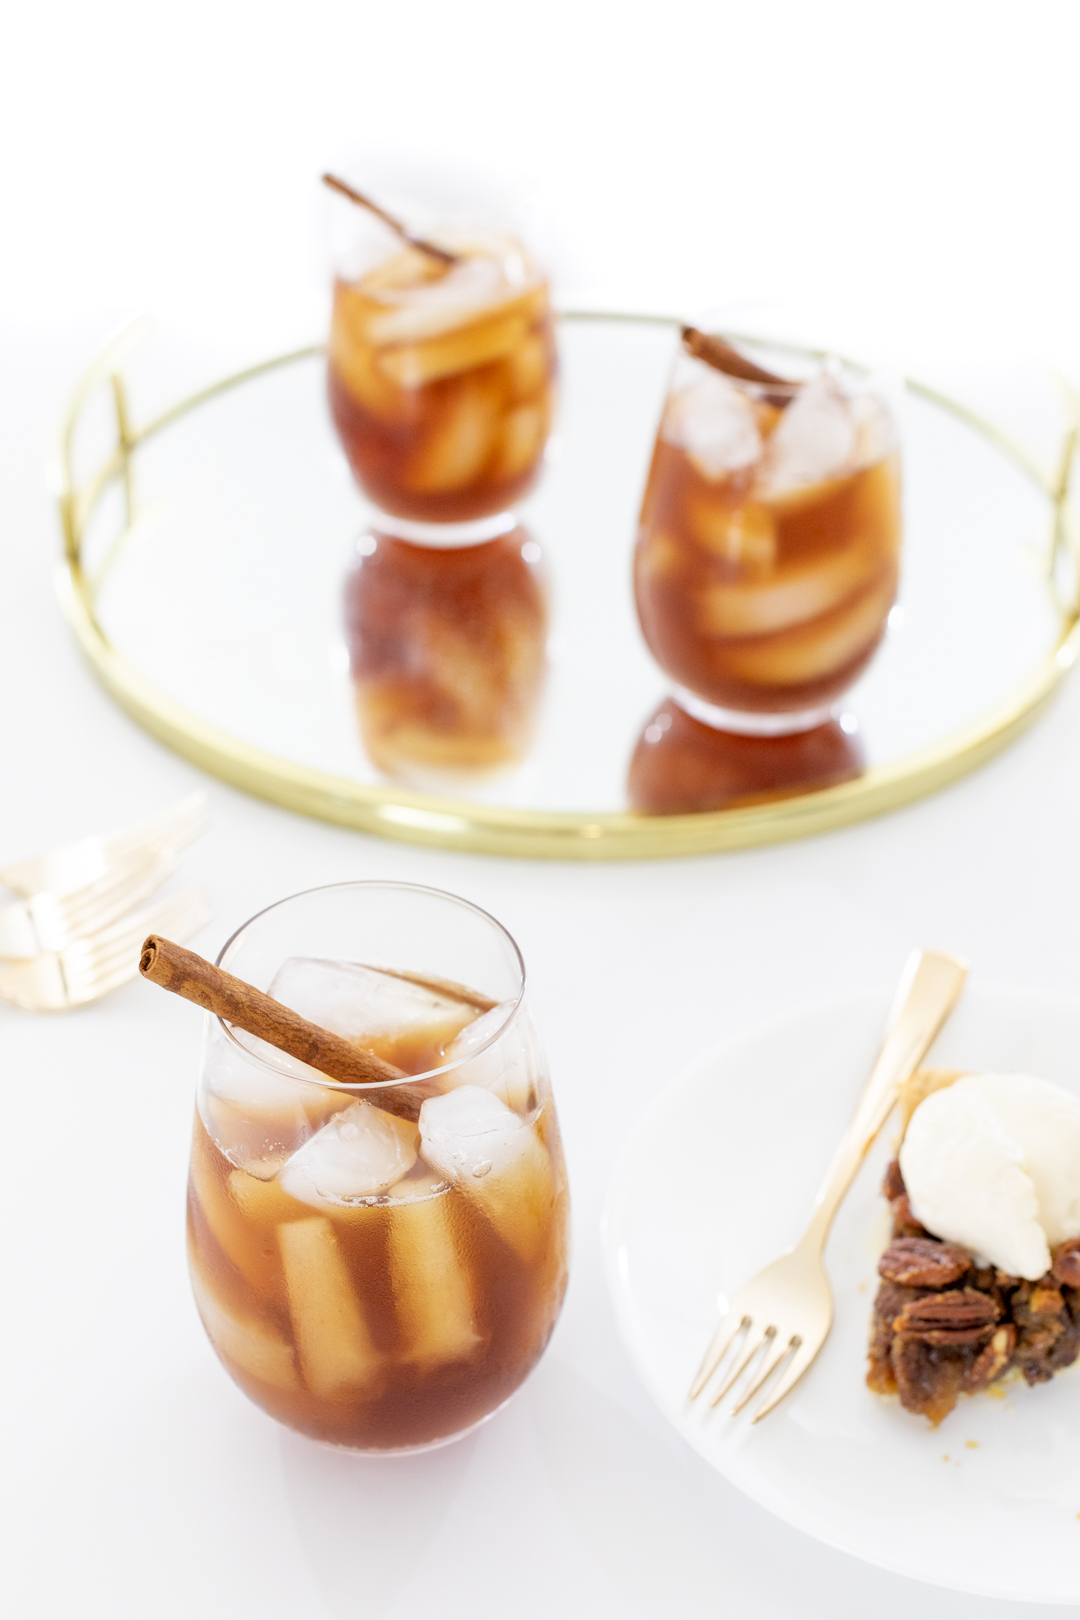 Glass of iced tea with ice and a cinnamon stick served with a slice of pecan pie with ice cream.